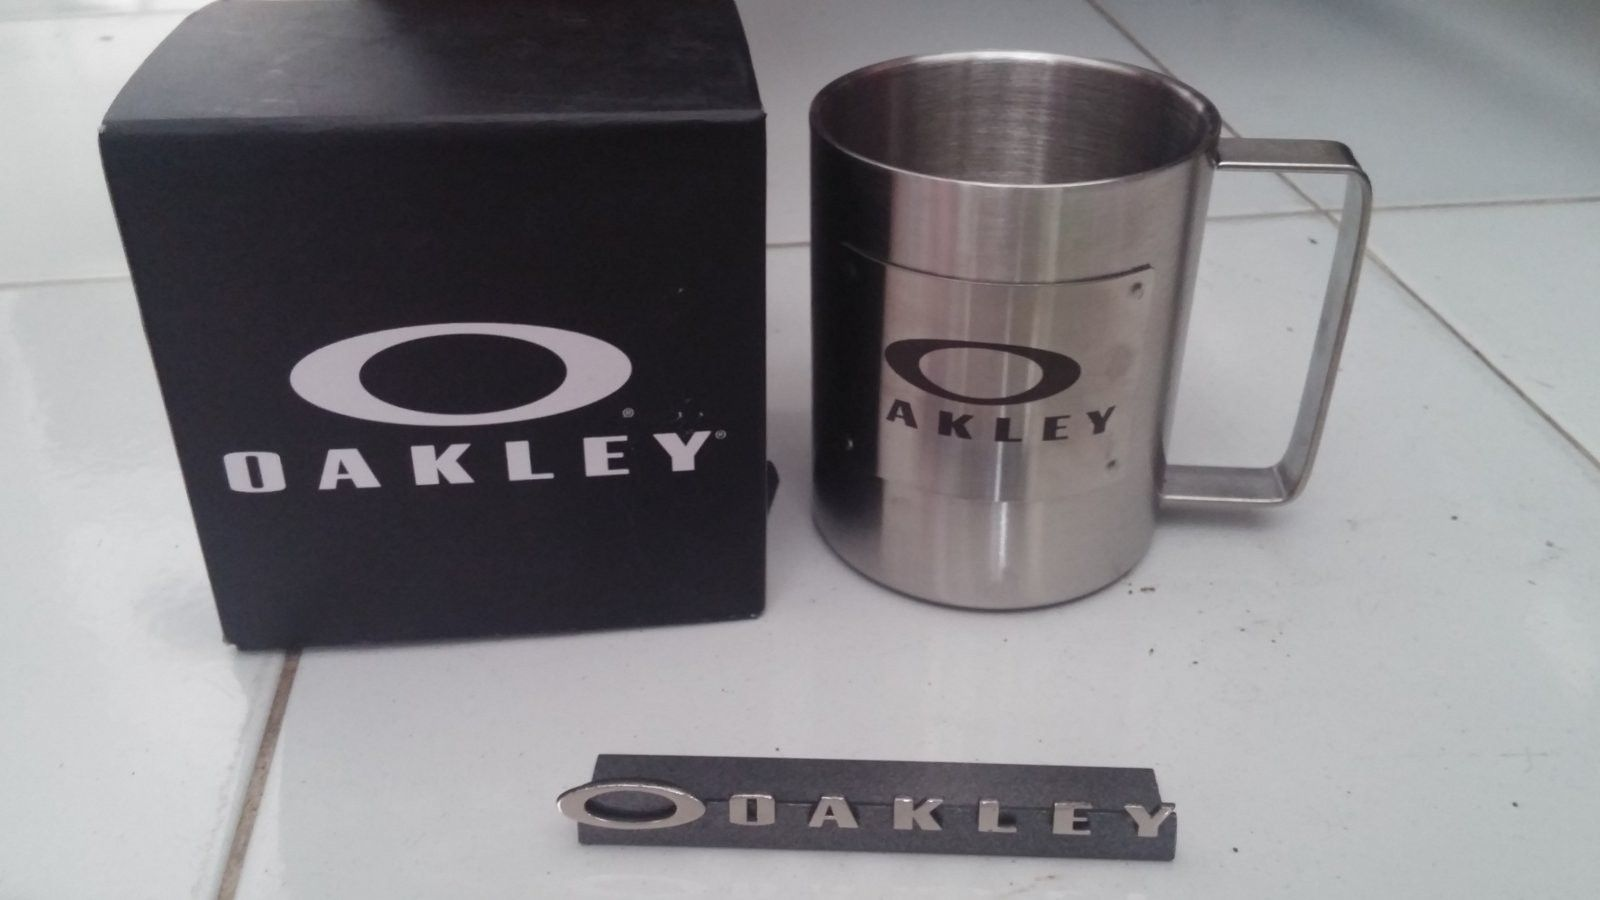 Oakley mug & small display logo - 20160818_140705.jpg